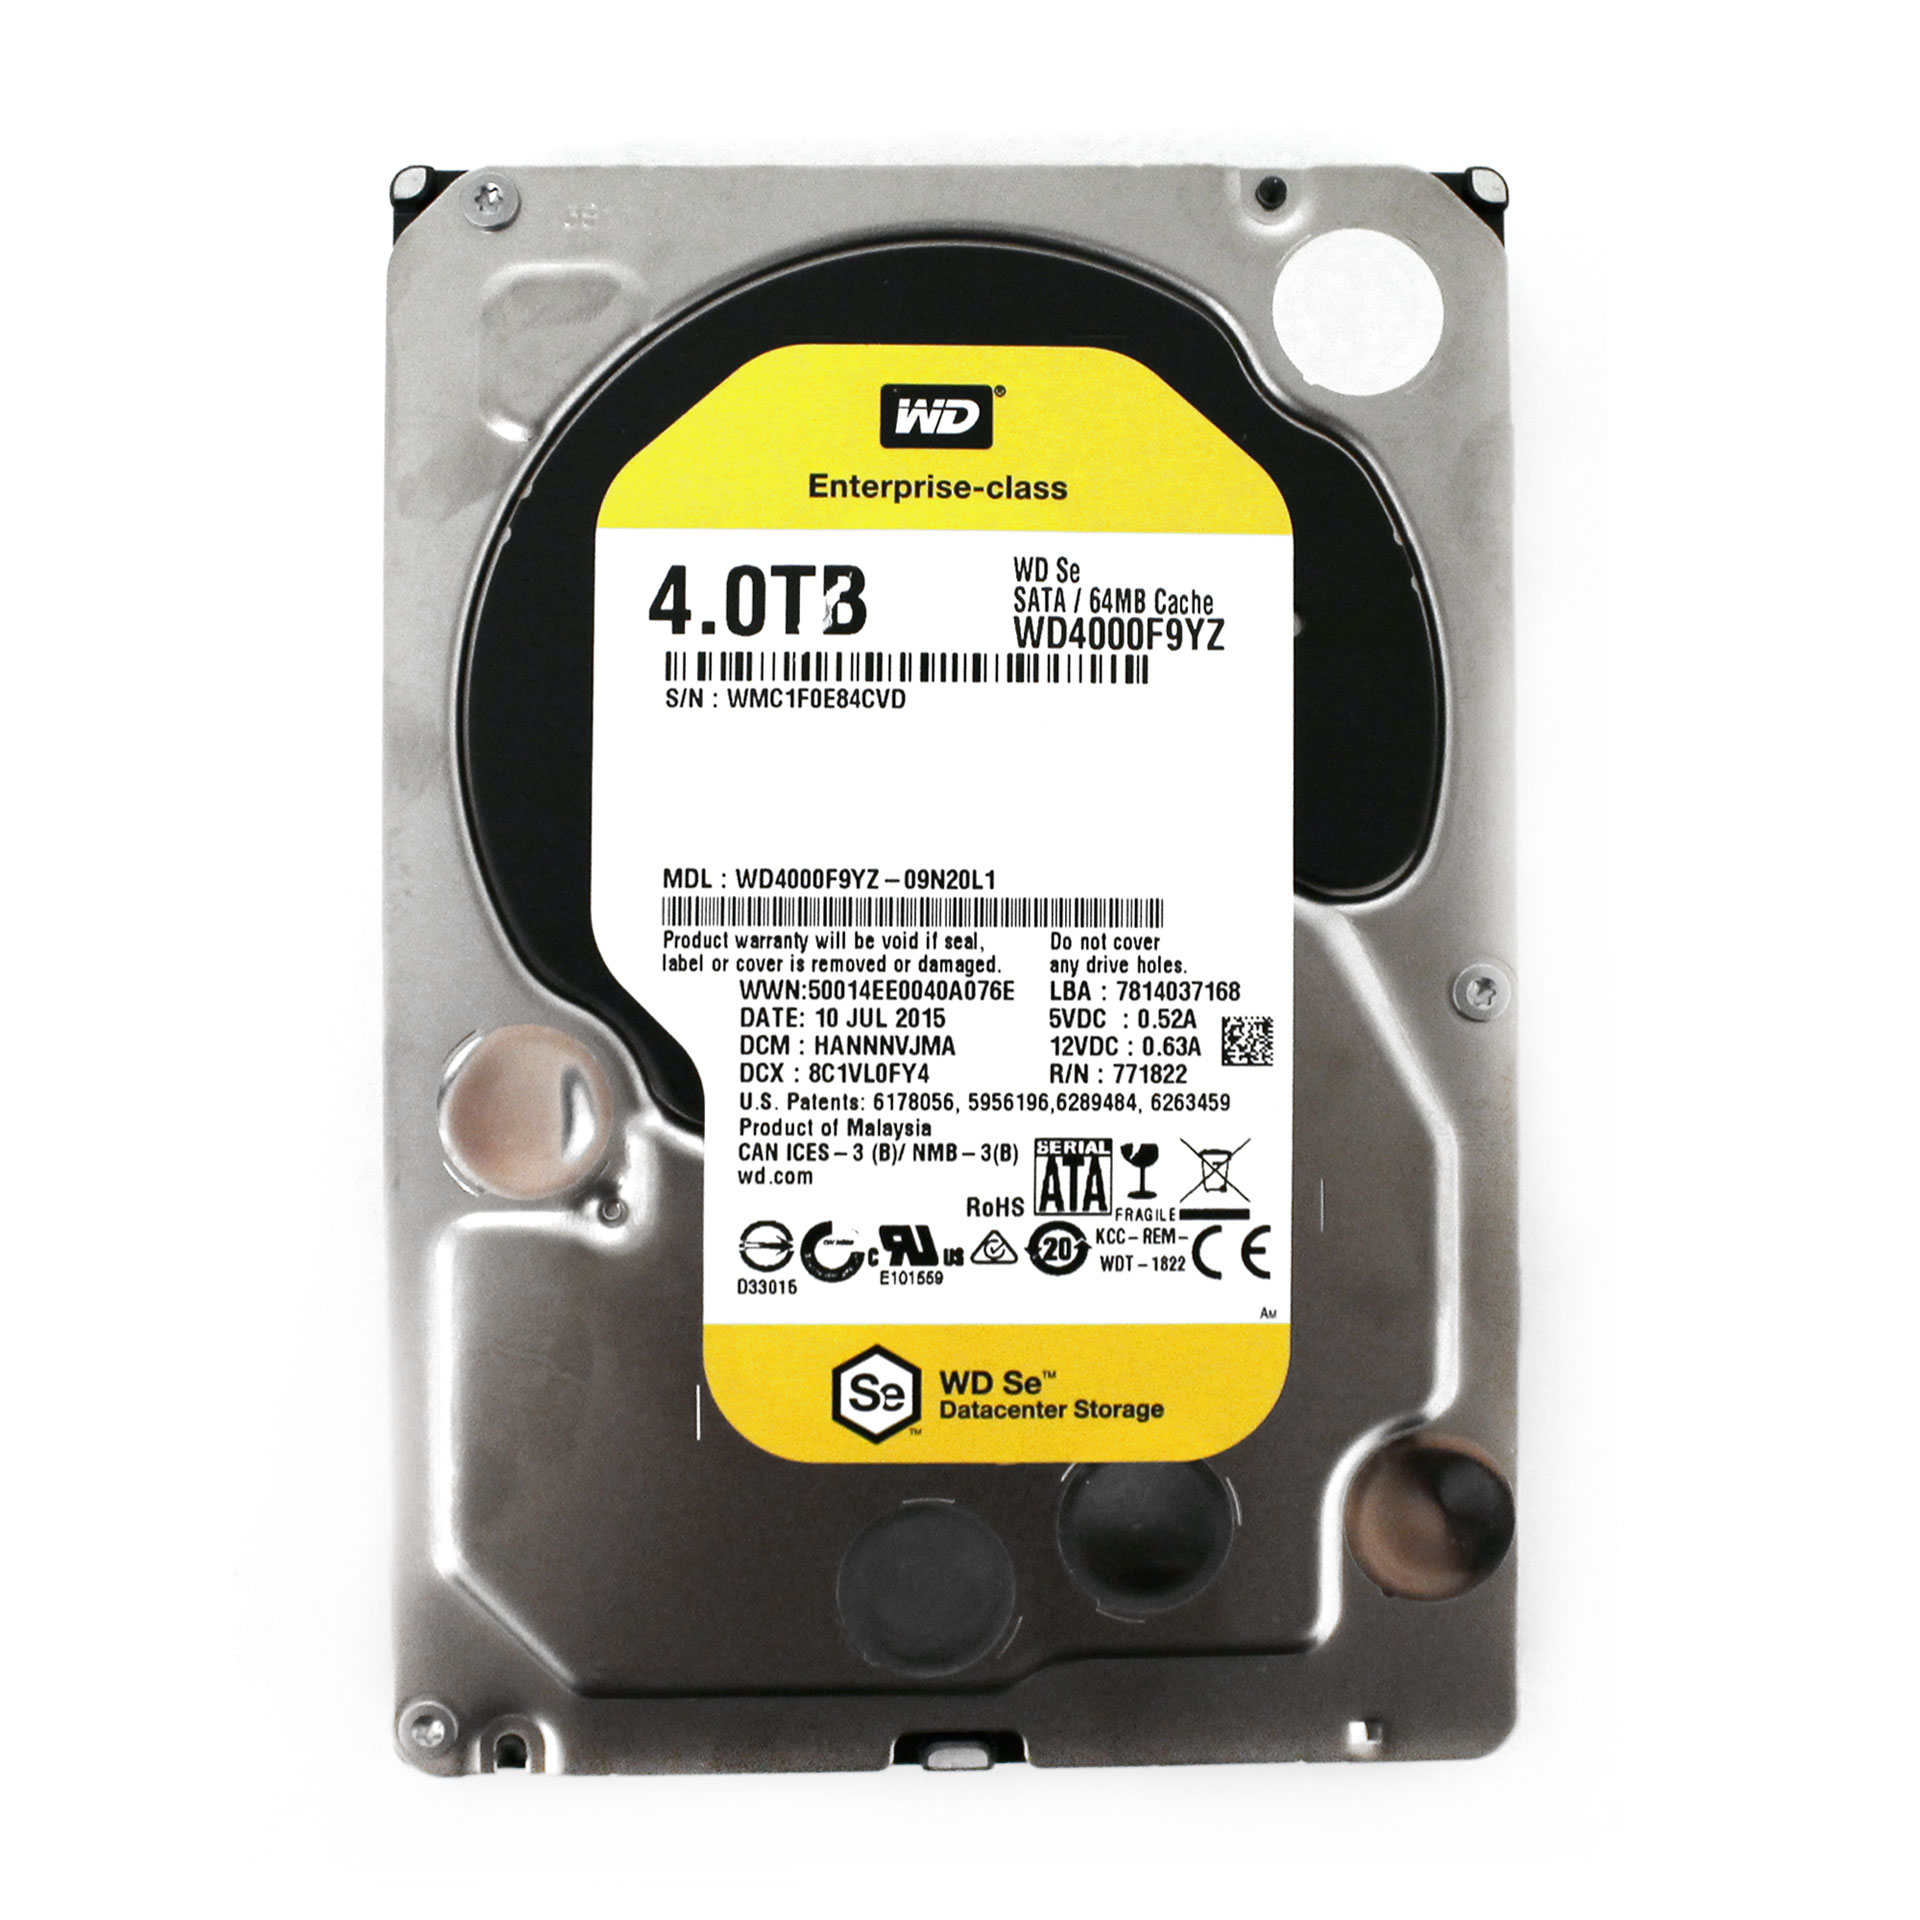 "Western Digital Se 4TB Internal HDD WD4000F9YZ 3.5"" SATA 6Gb/s"